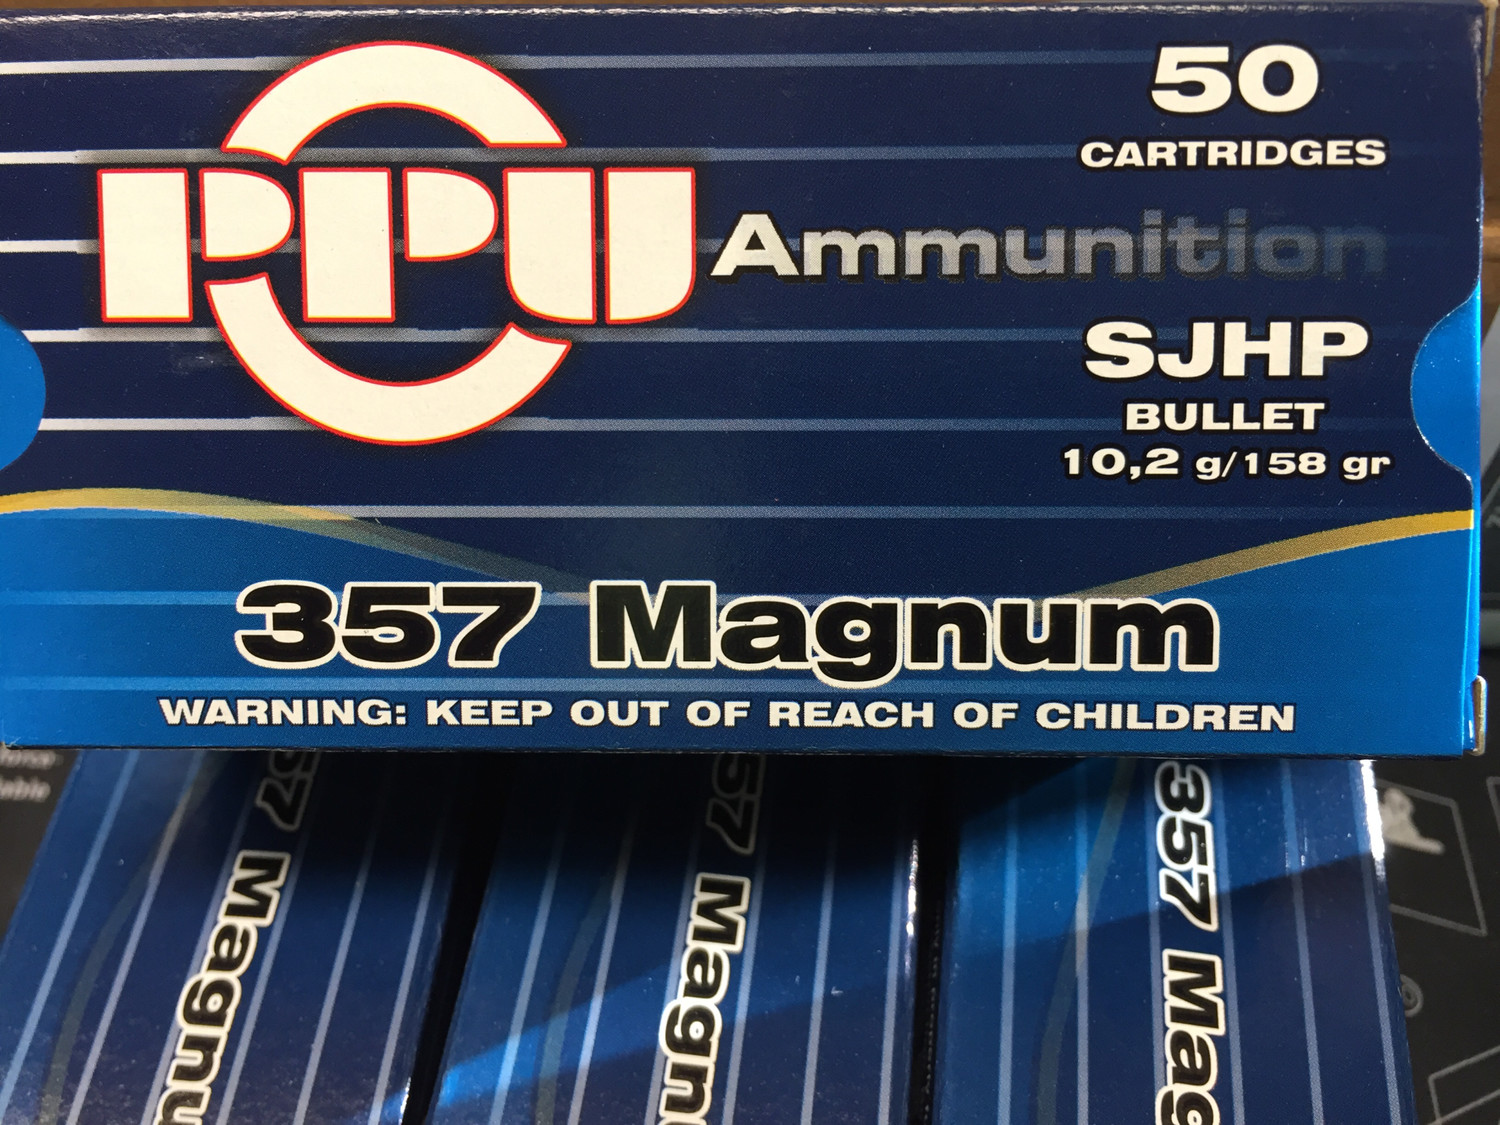 PPU .357 Magnum Semi Jacketed Hollow Points 158gr / 50 Rnds